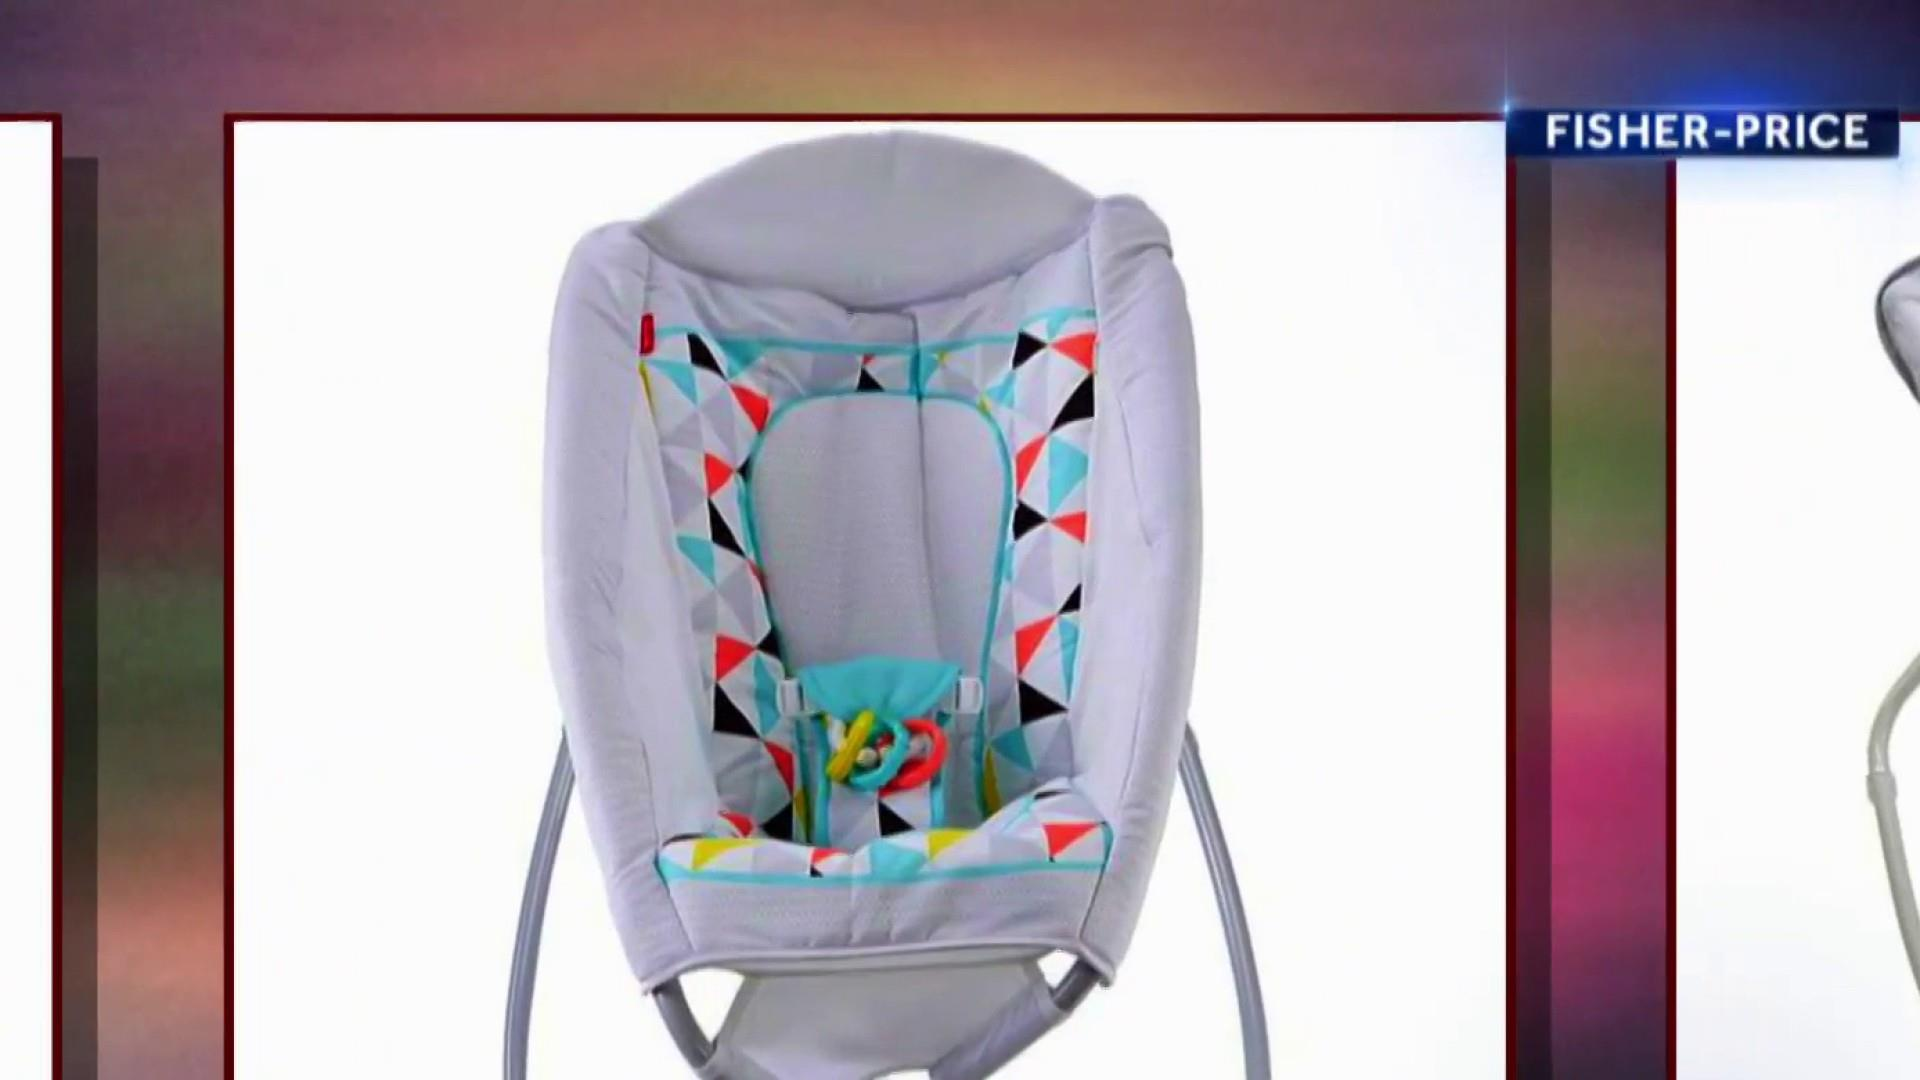 Fisher Price Recalls Rock N Play Sleepers After More Than 30 Babies Died